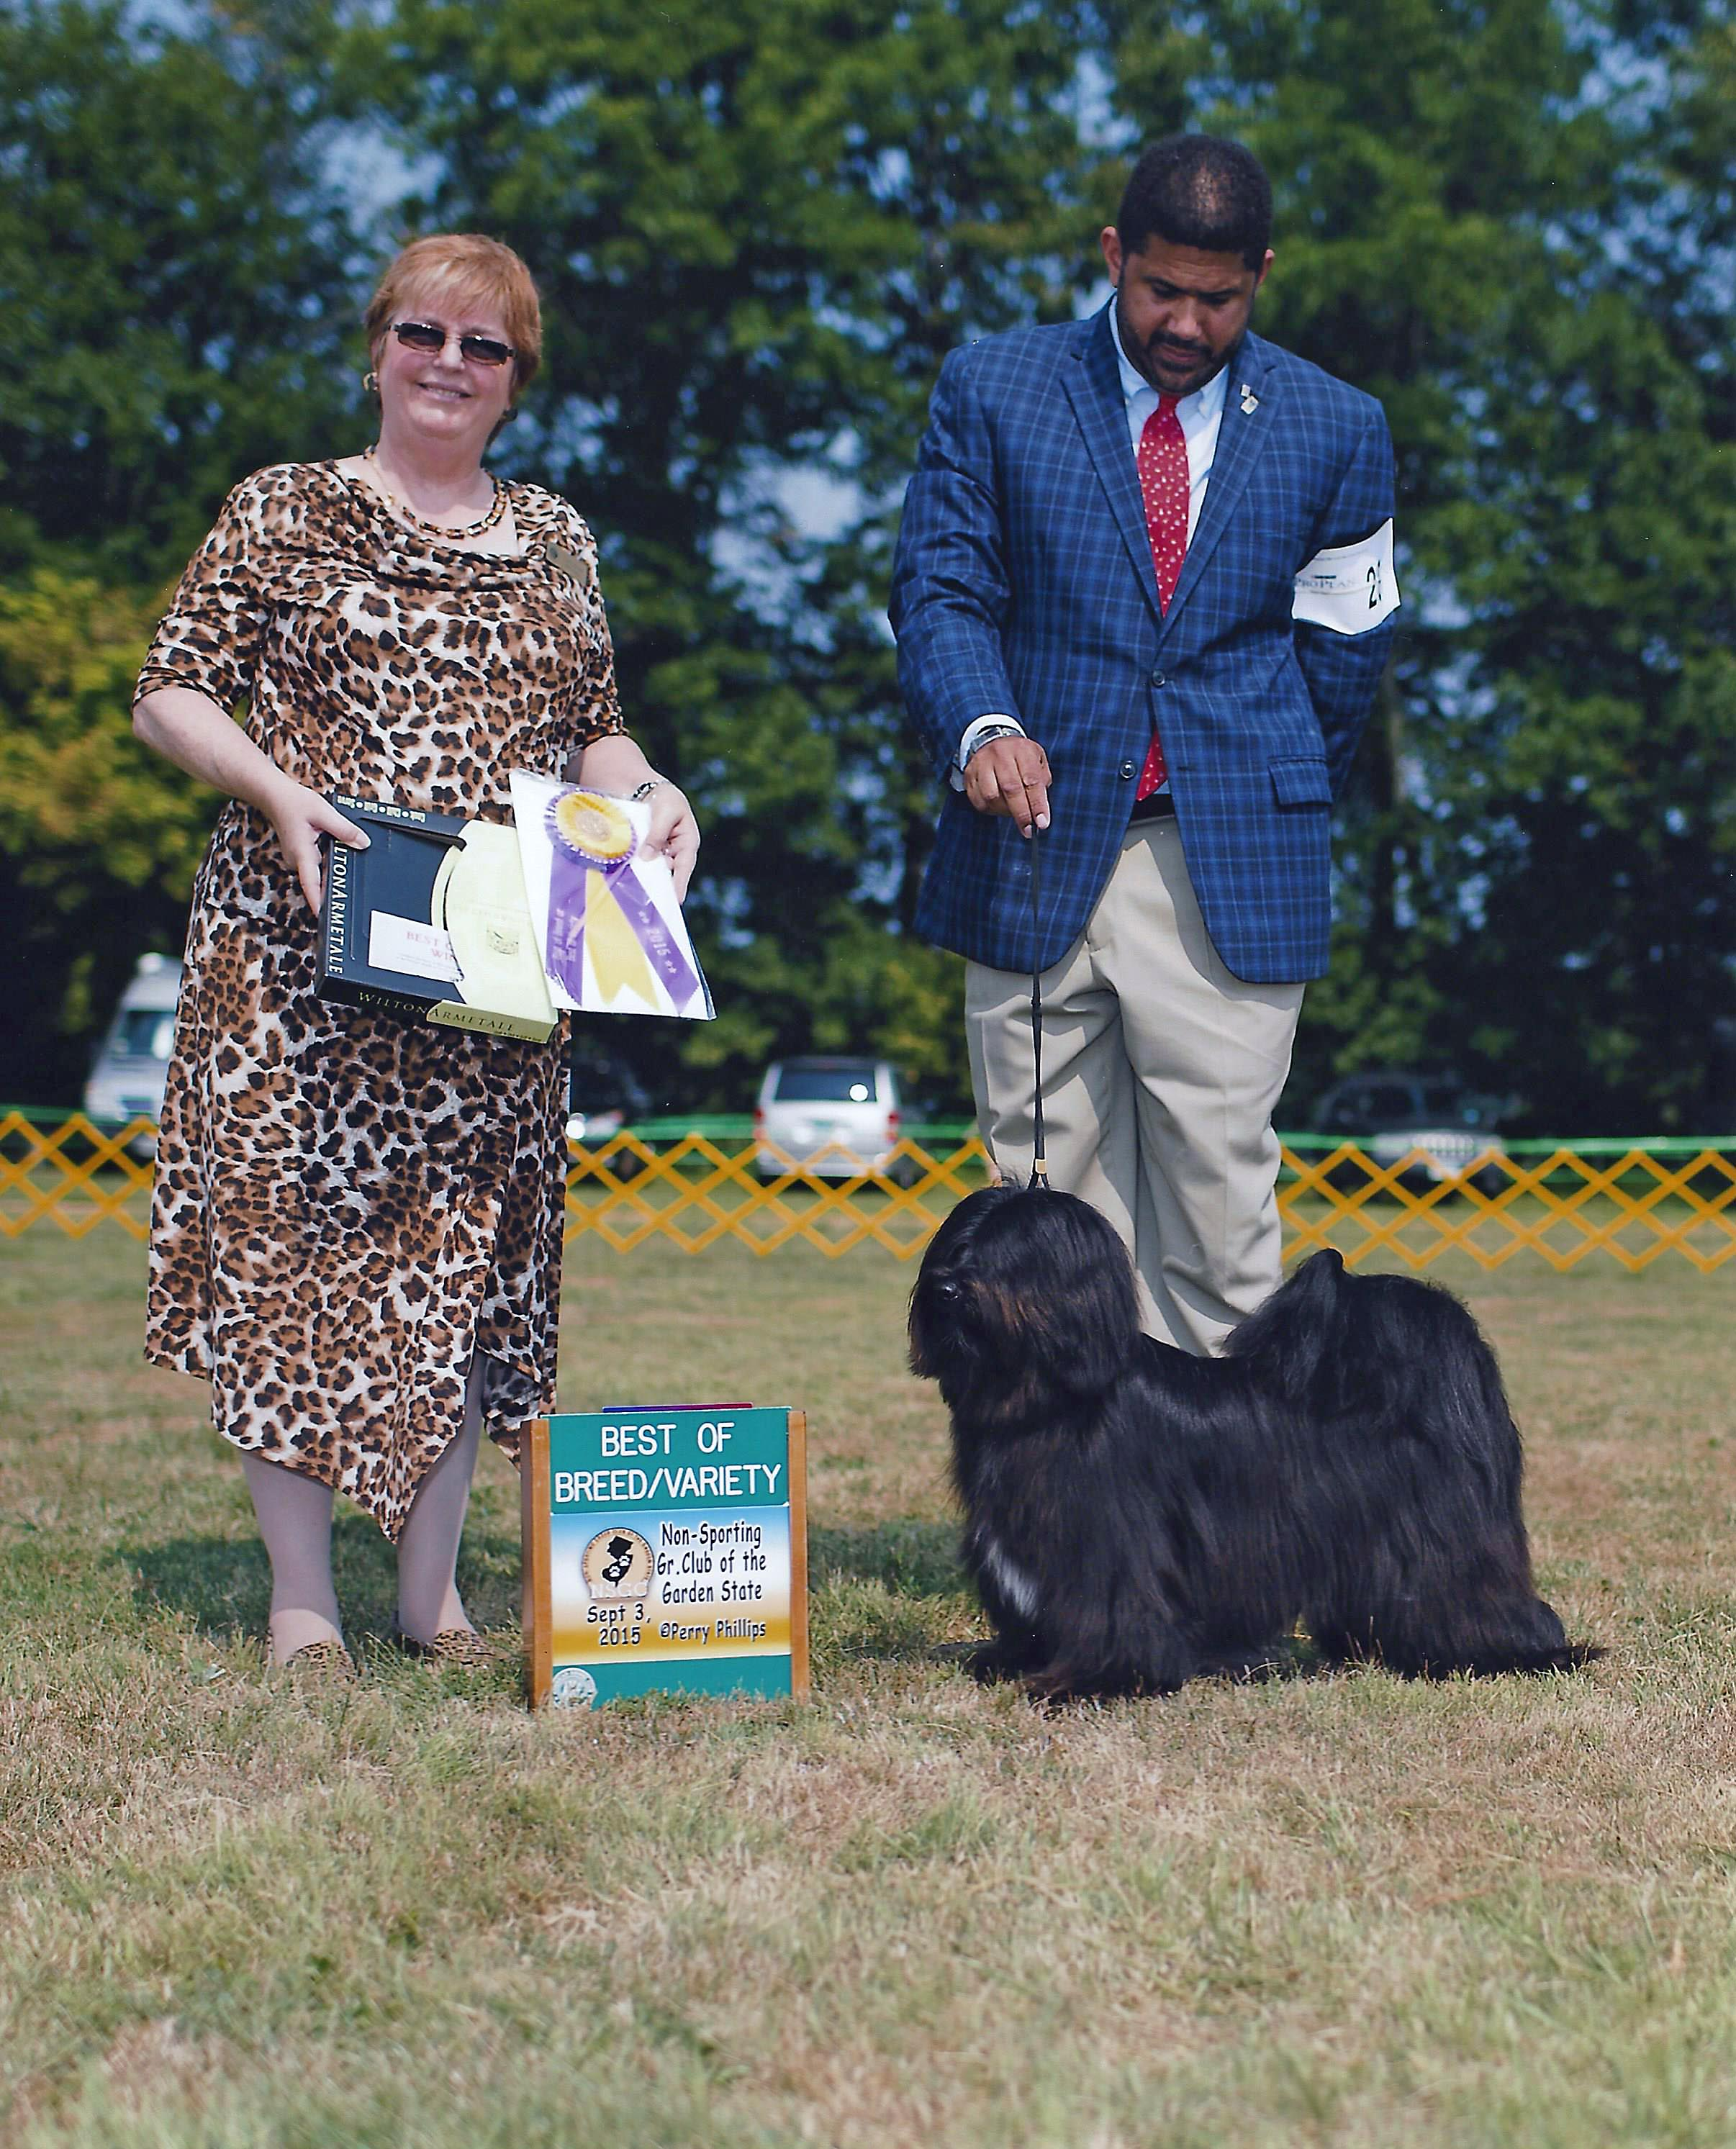 Mark Desrosiers with Ziva, Best of Breed win